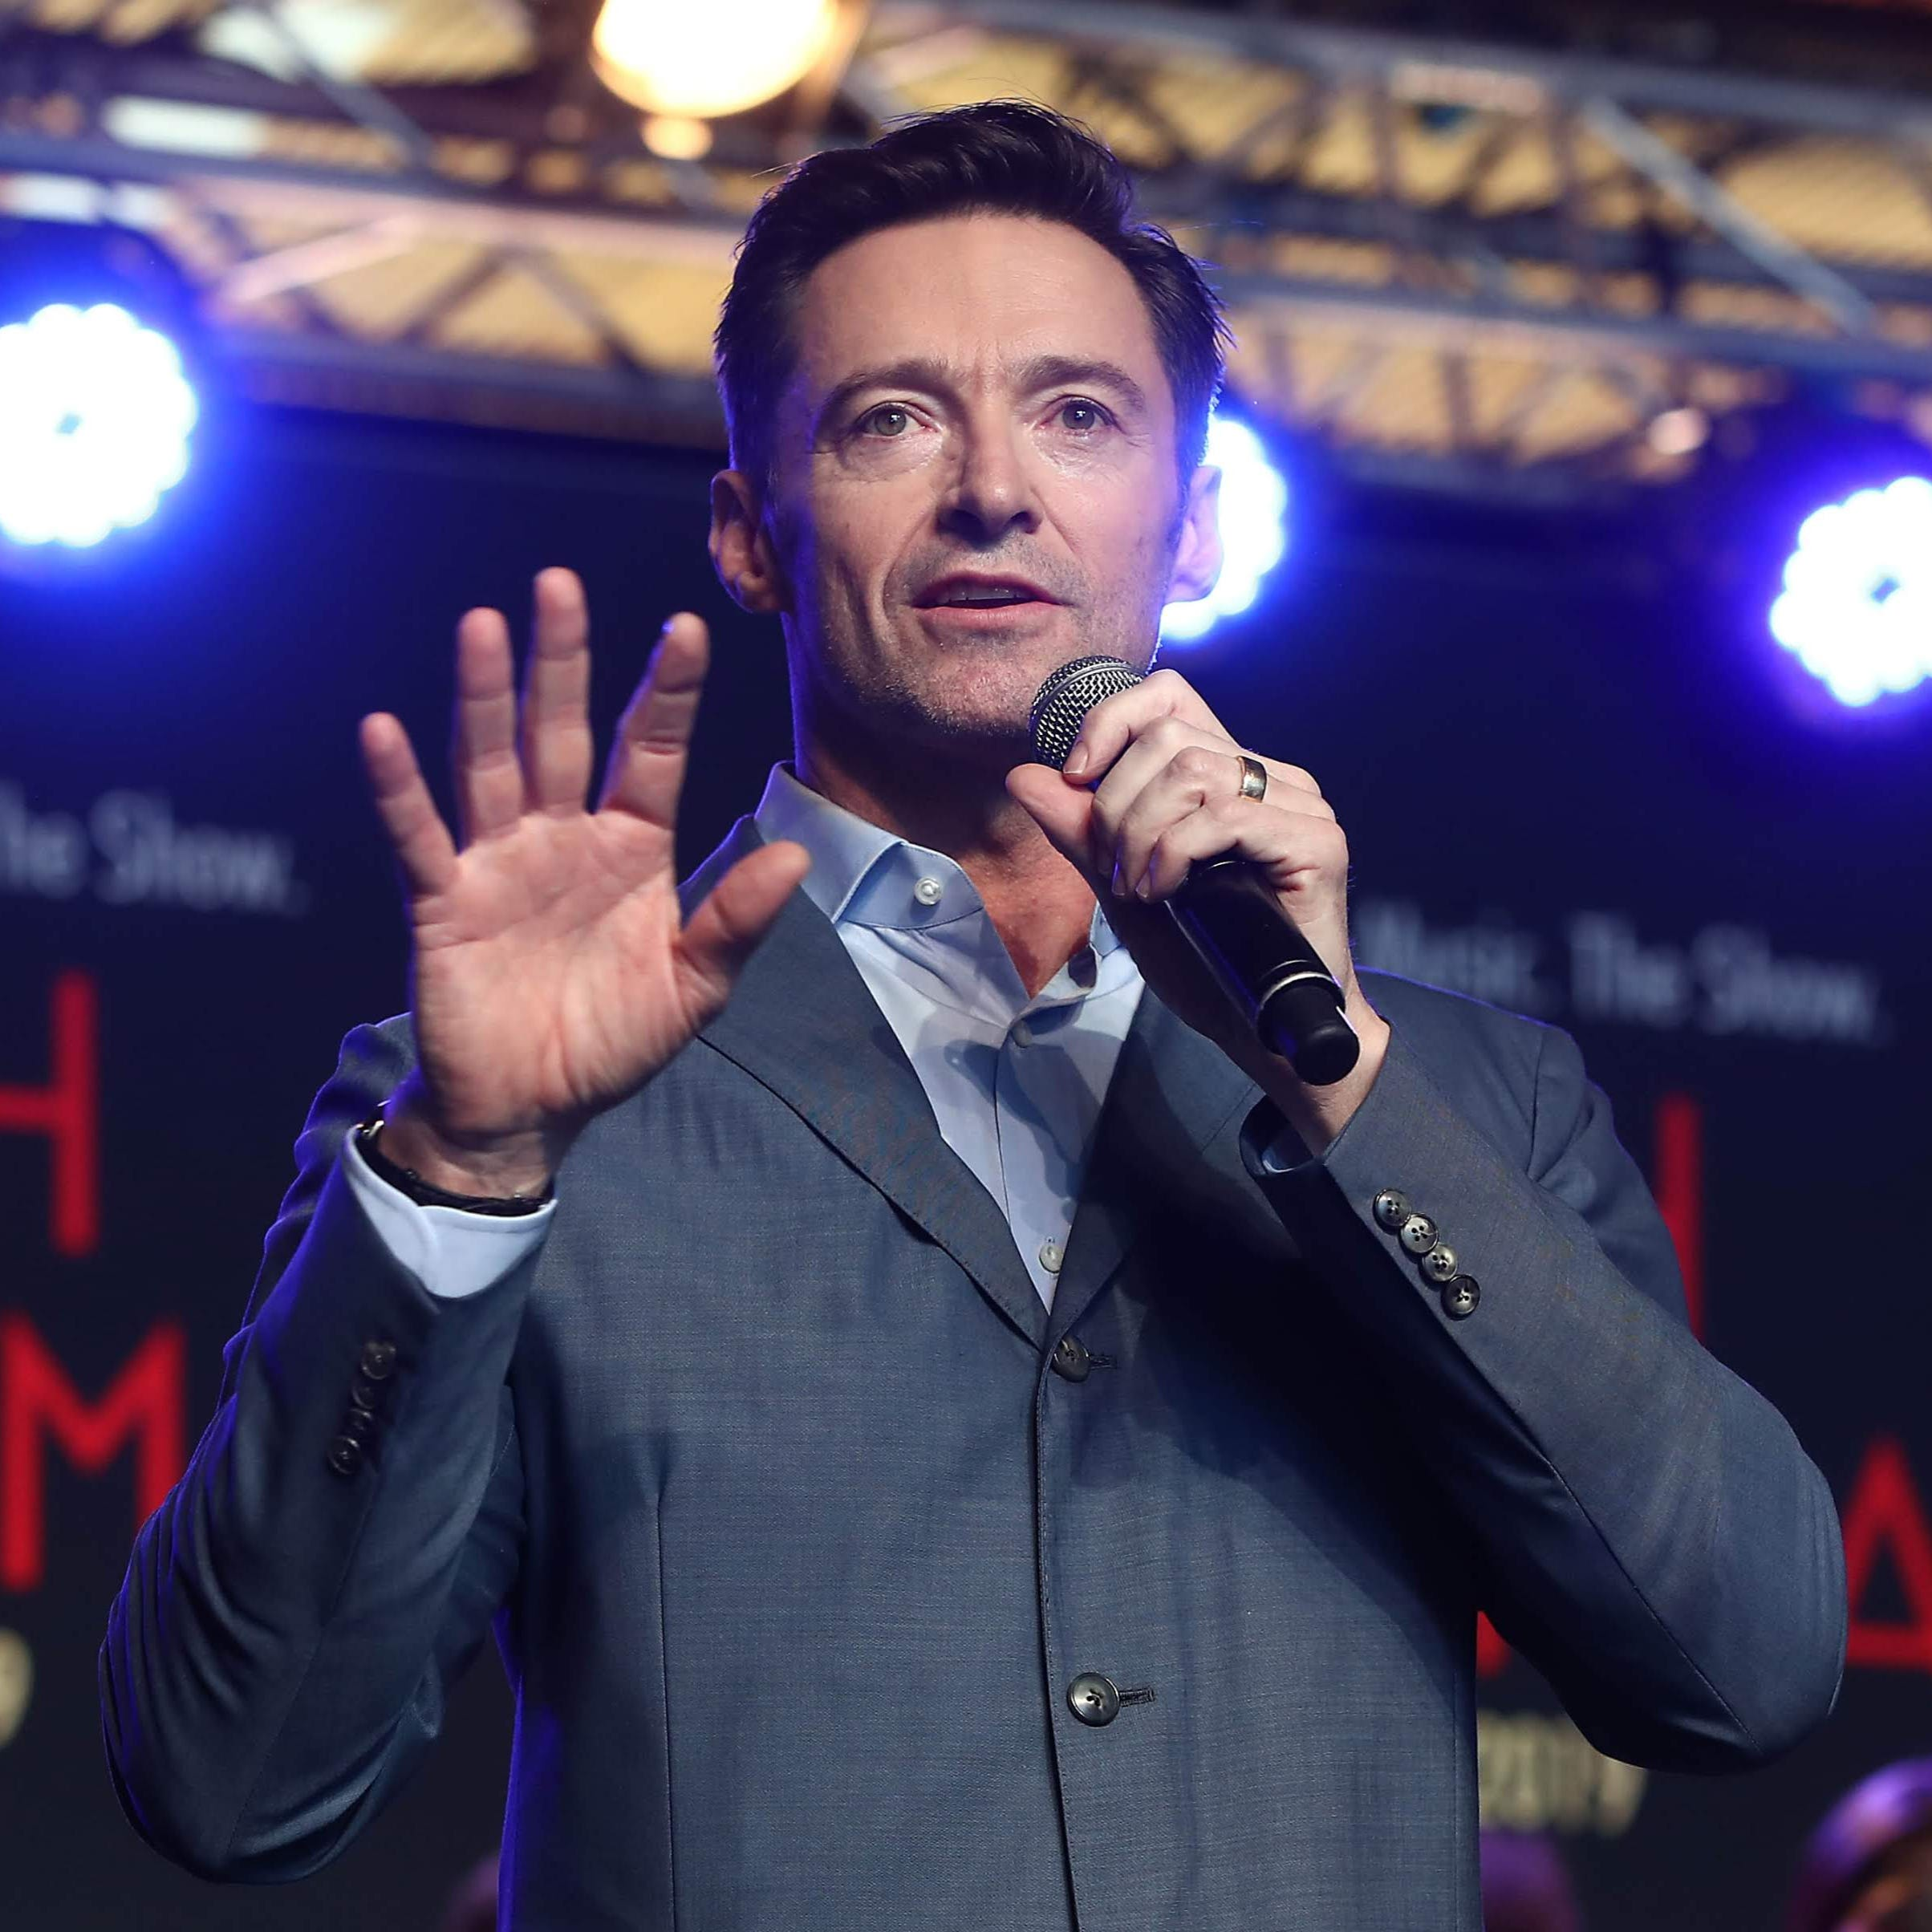 Hugh Jackman adds Indianapolis concert to his first world tour